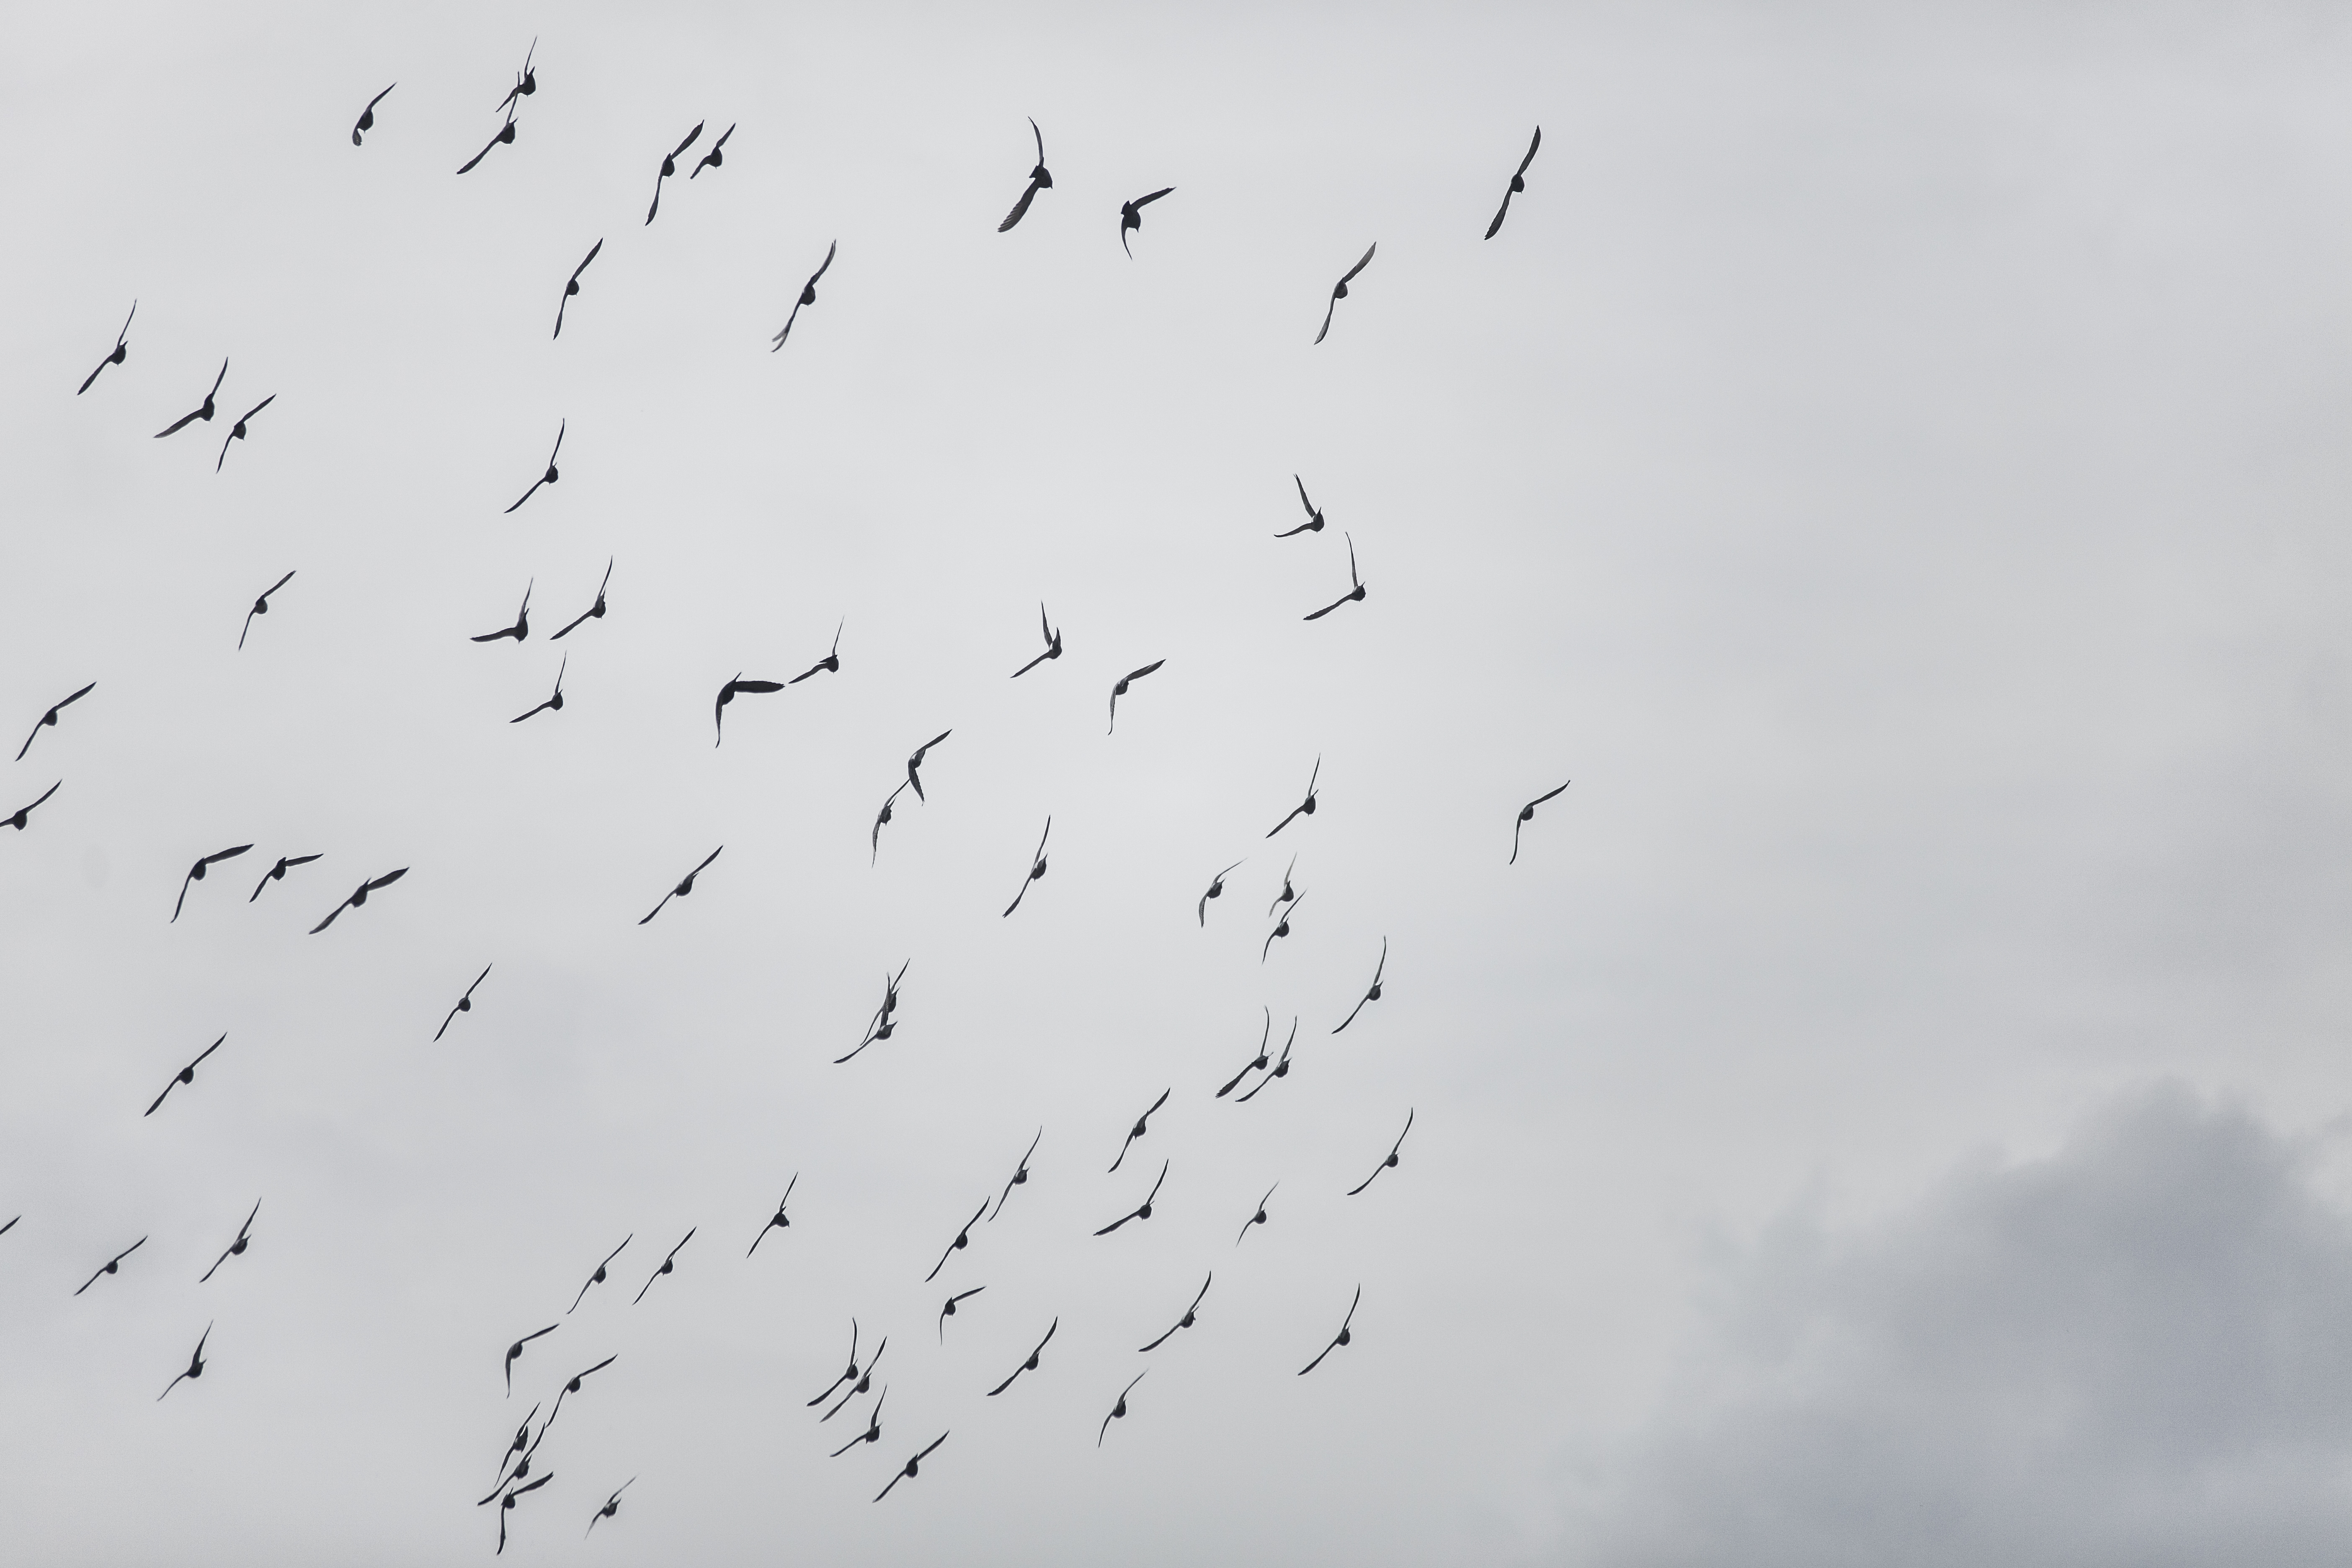 Flock Of Doves, bird, birds, flock, gray, cloudy sky, flying, flying